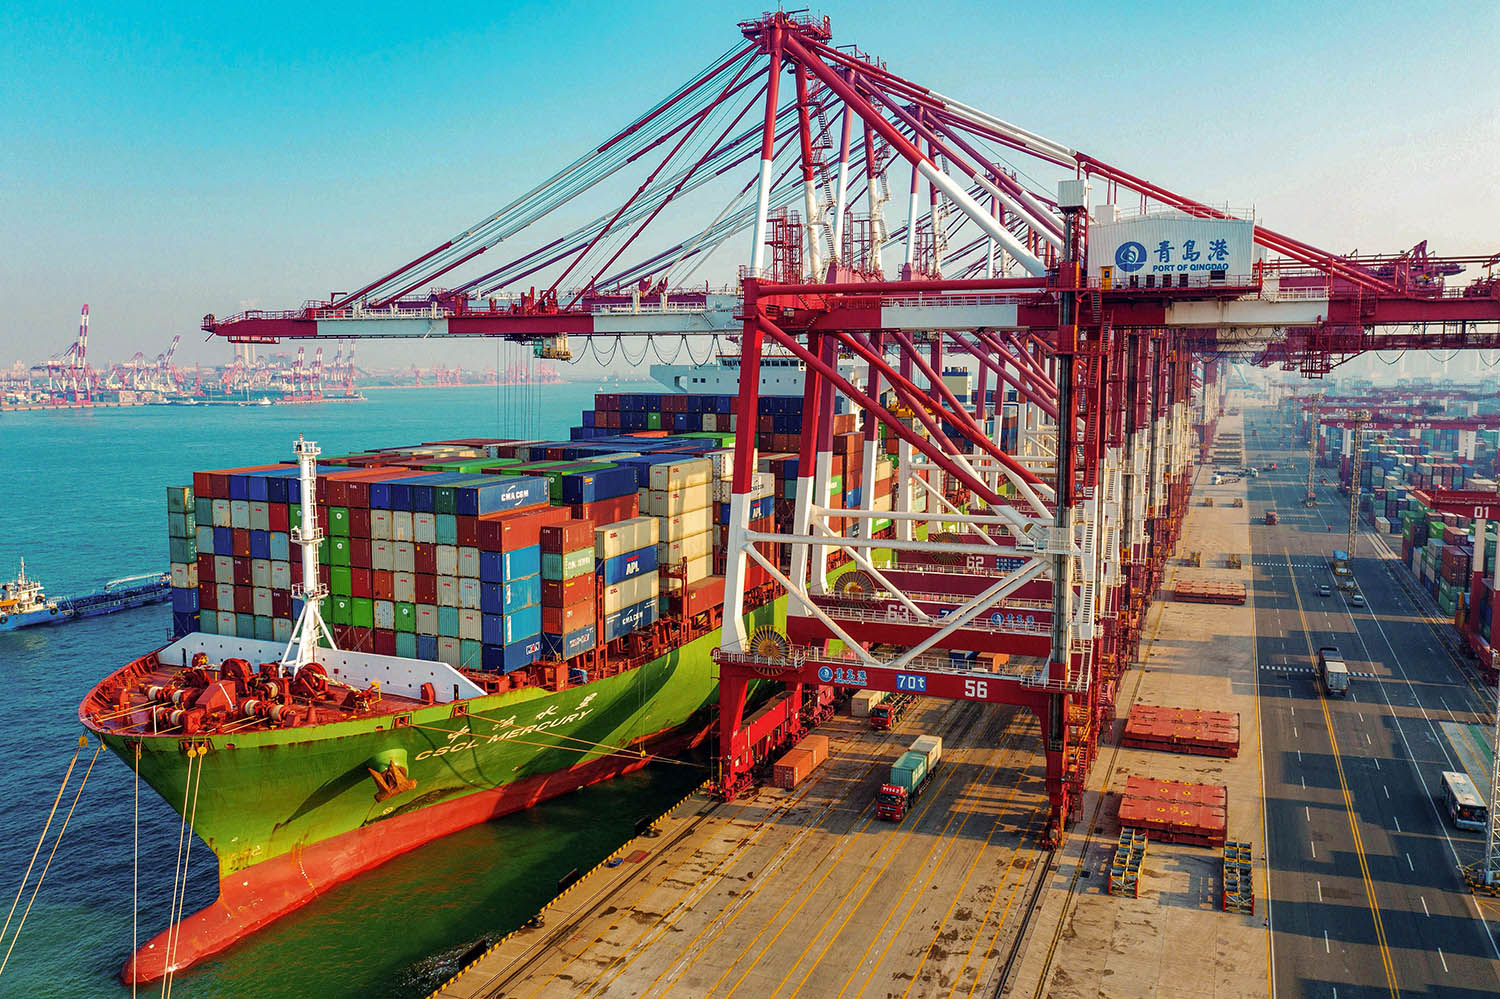 A cargo ship loaded with containers berths at a port in Qingdao in China's eastern Shandong province on Jan. 14.